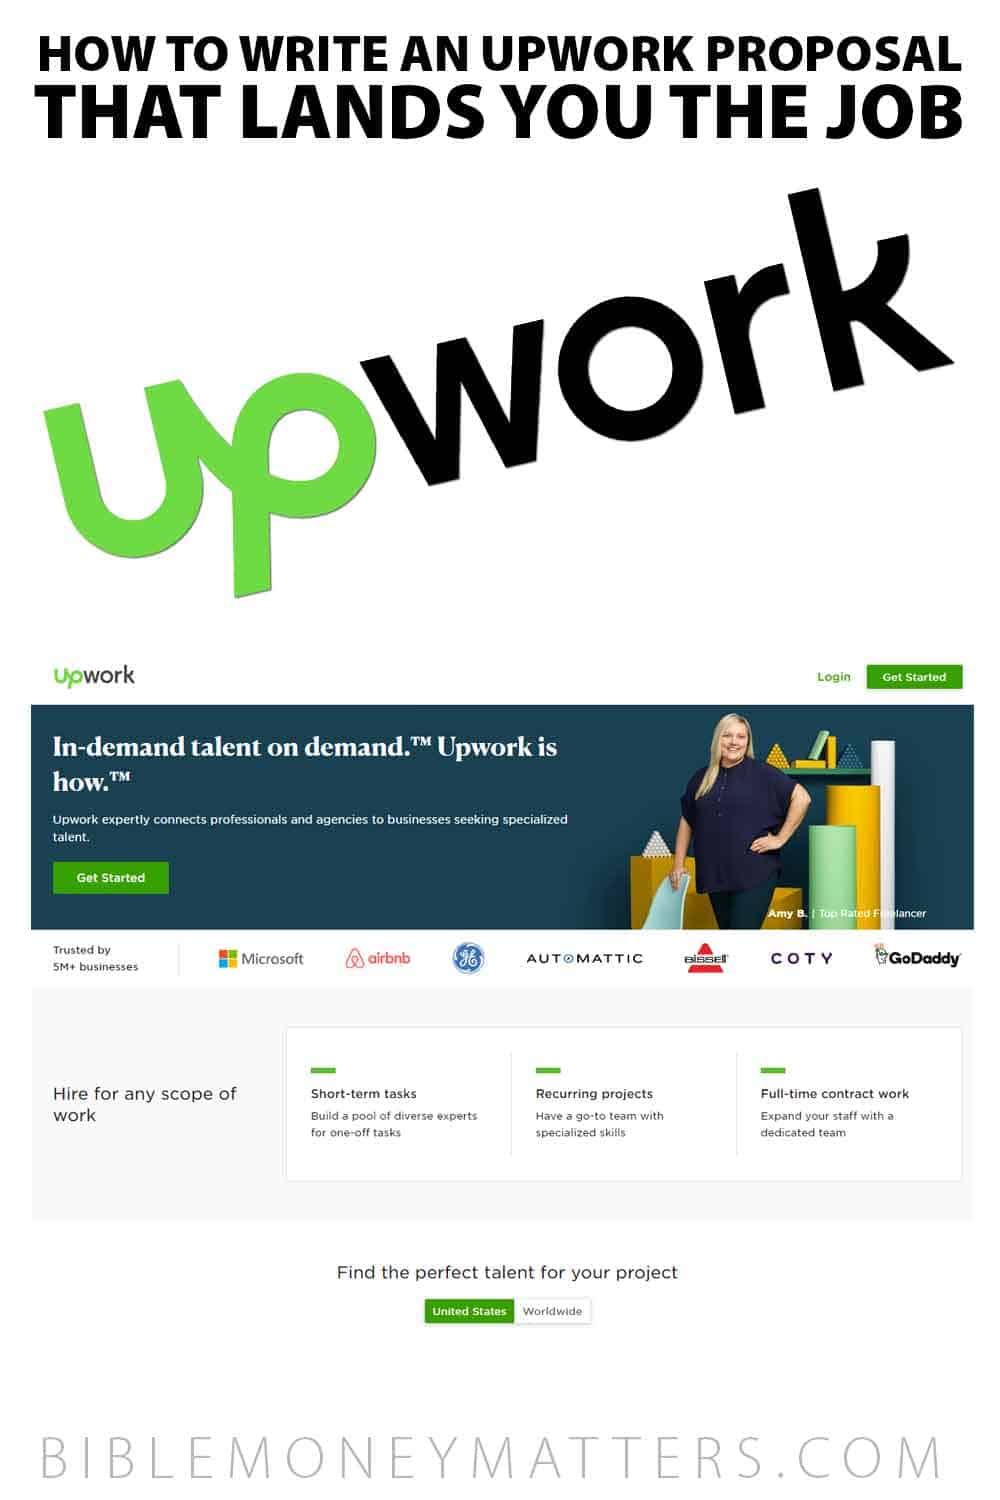 How To Write An Upwork Proposal That Lands You The Job